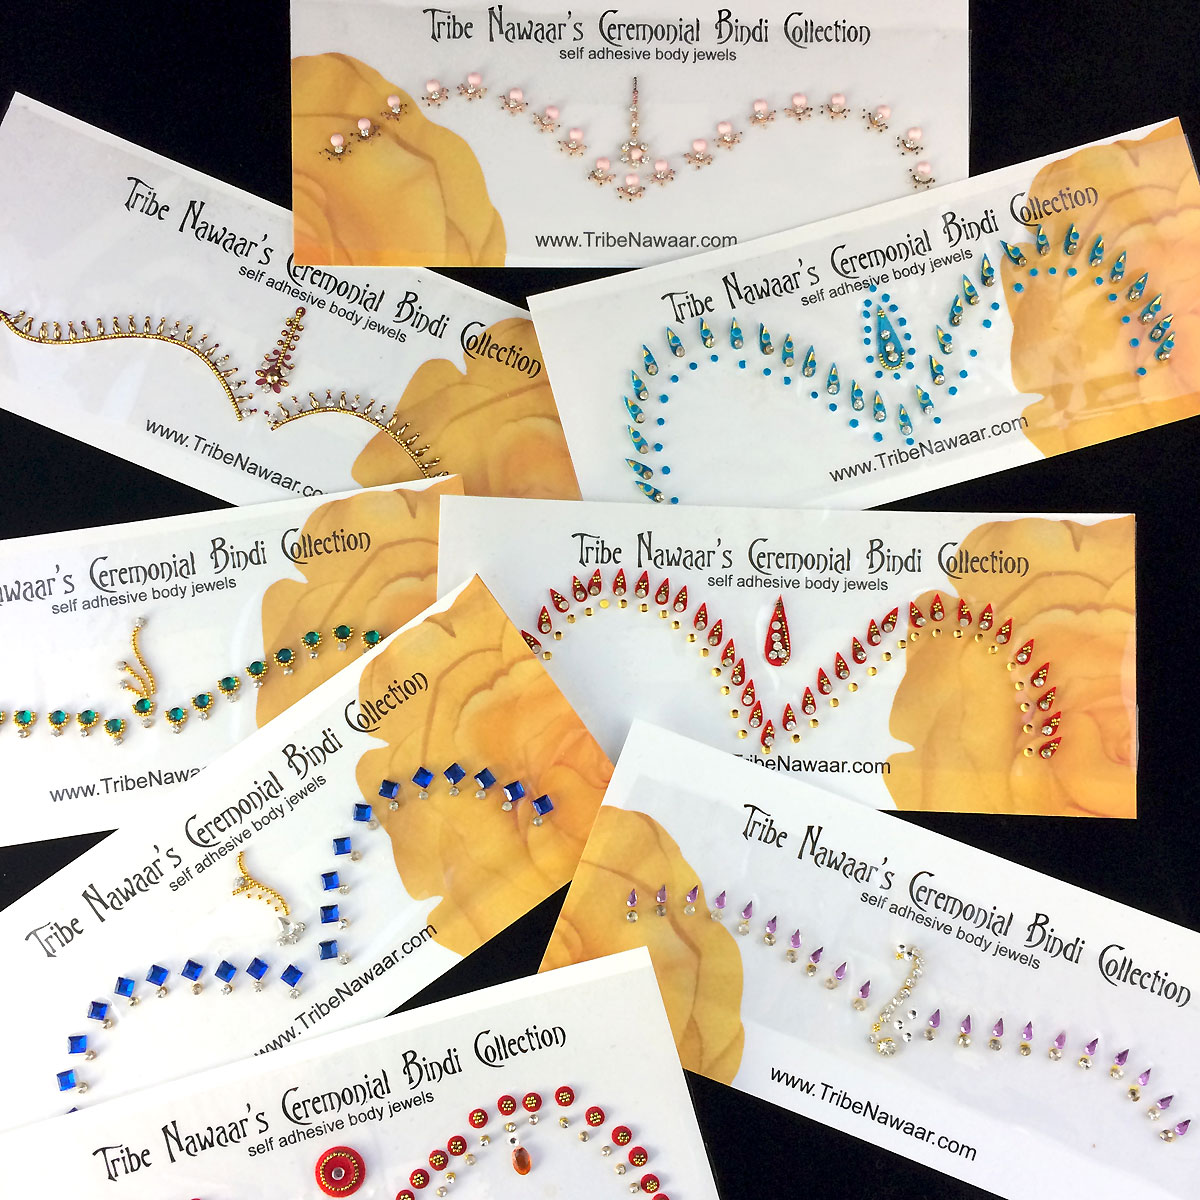 Tribe Nawaar's traditional ceremonial bindi set sample of some of the variation in color, size, shape and quantity